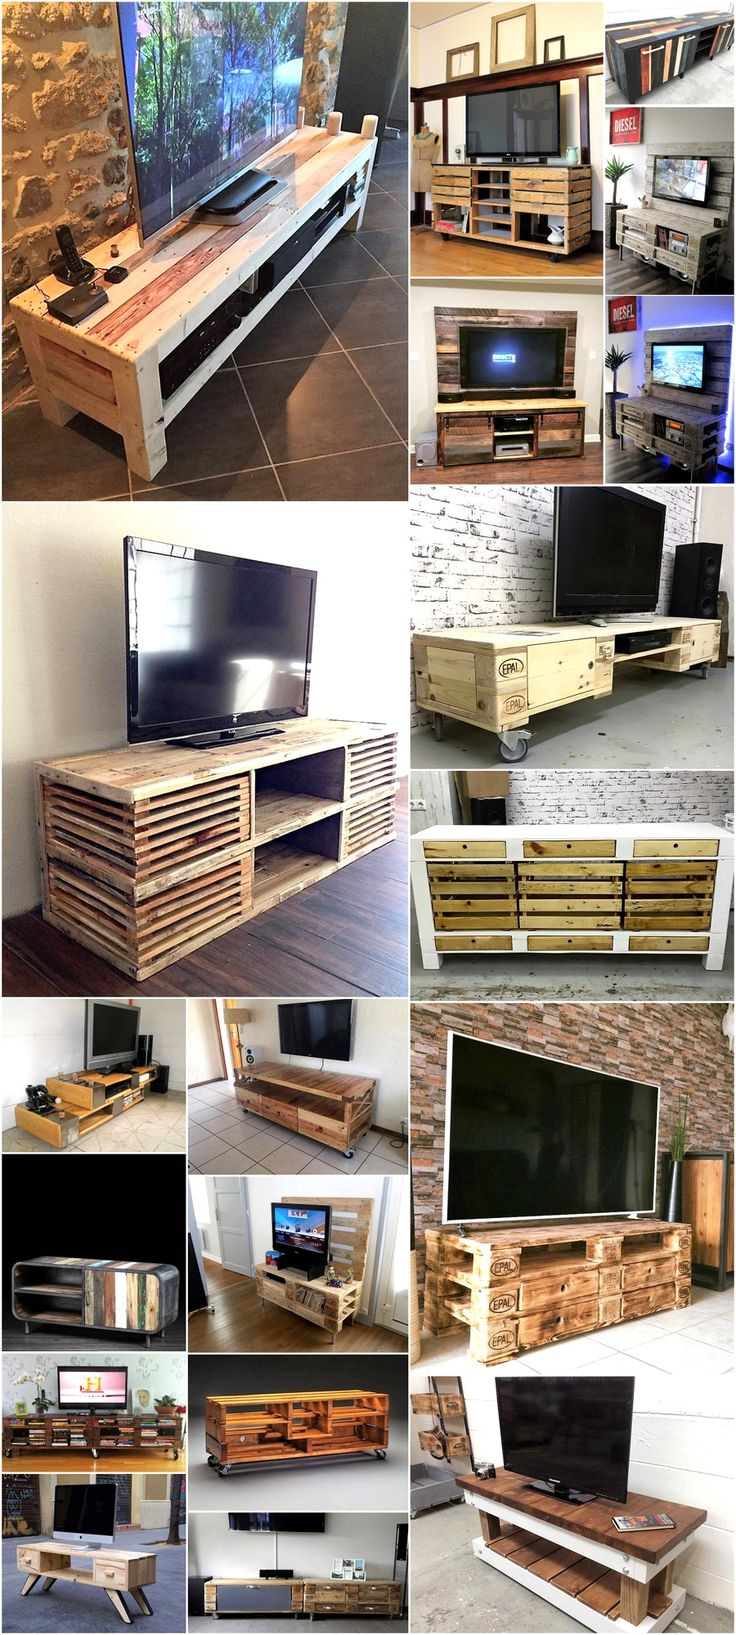 Home shop live tv stands chunky stretch tv stand - Eye Catching Ideas For Pallets Tv Stands